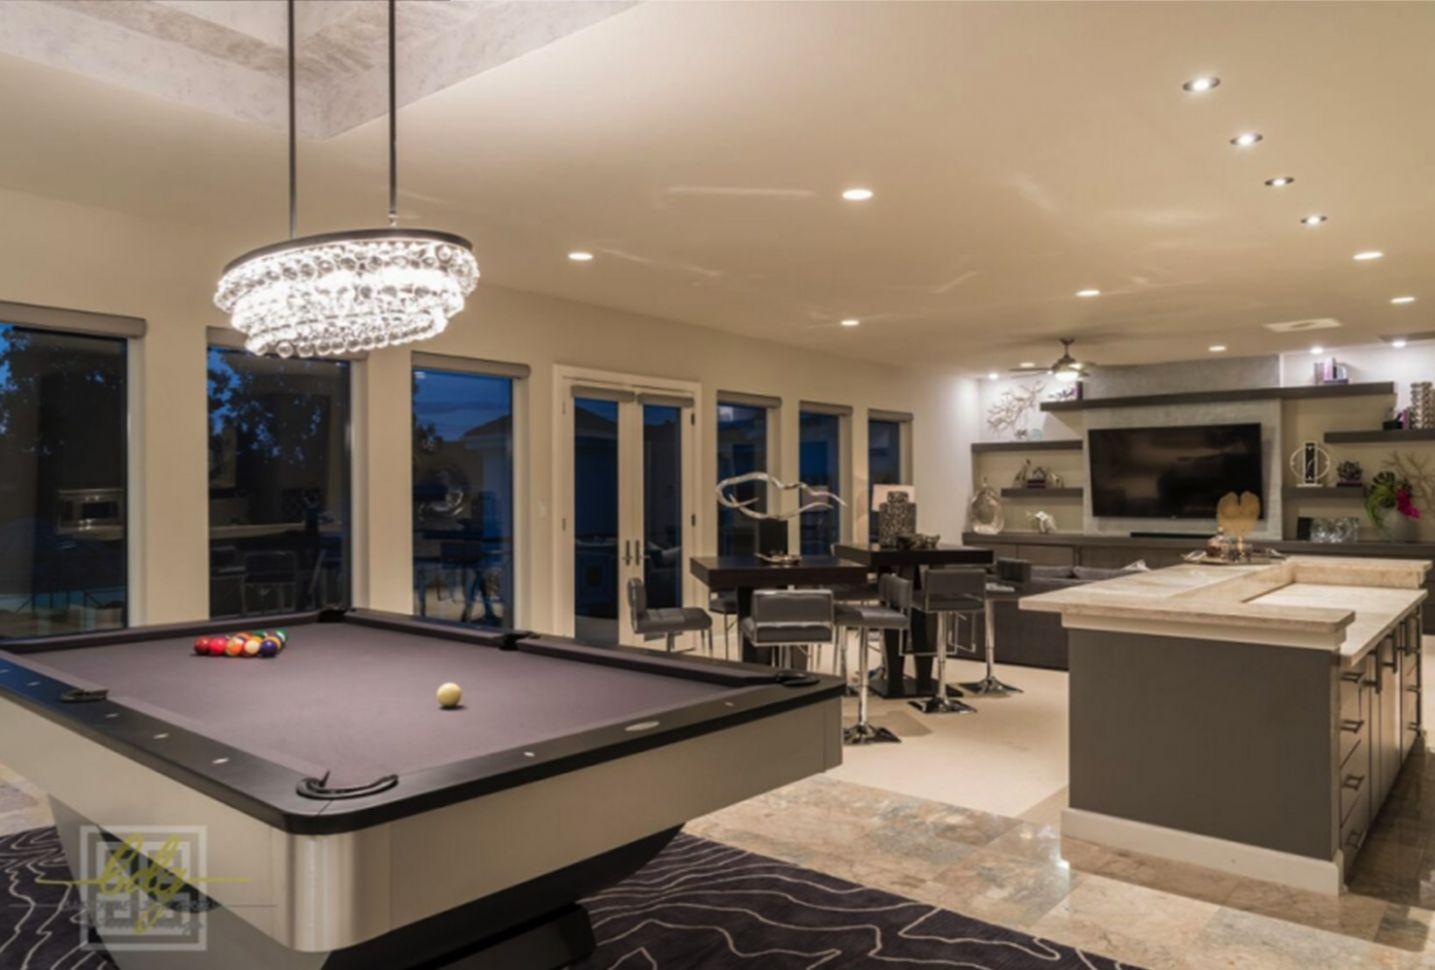 12 Best Game Room Ideas For Any Entertaining | Shutterfly